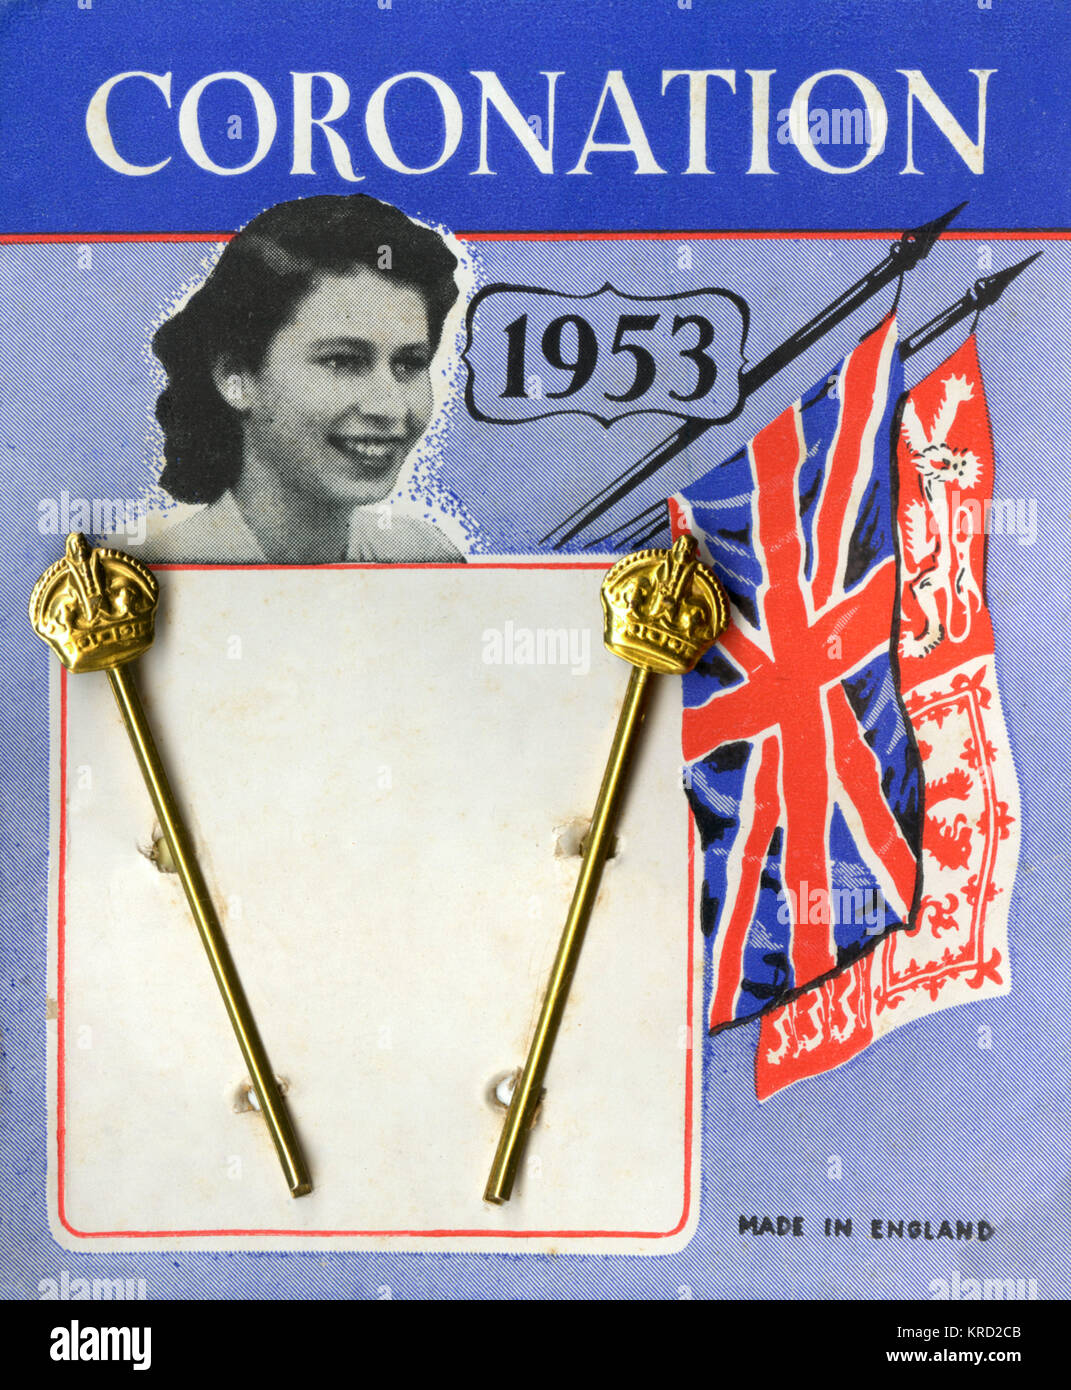 A pair of regal hair clips produced to commemorate the coronation of Queen Elizabeth II in 1953 featuring a small - Stock Image